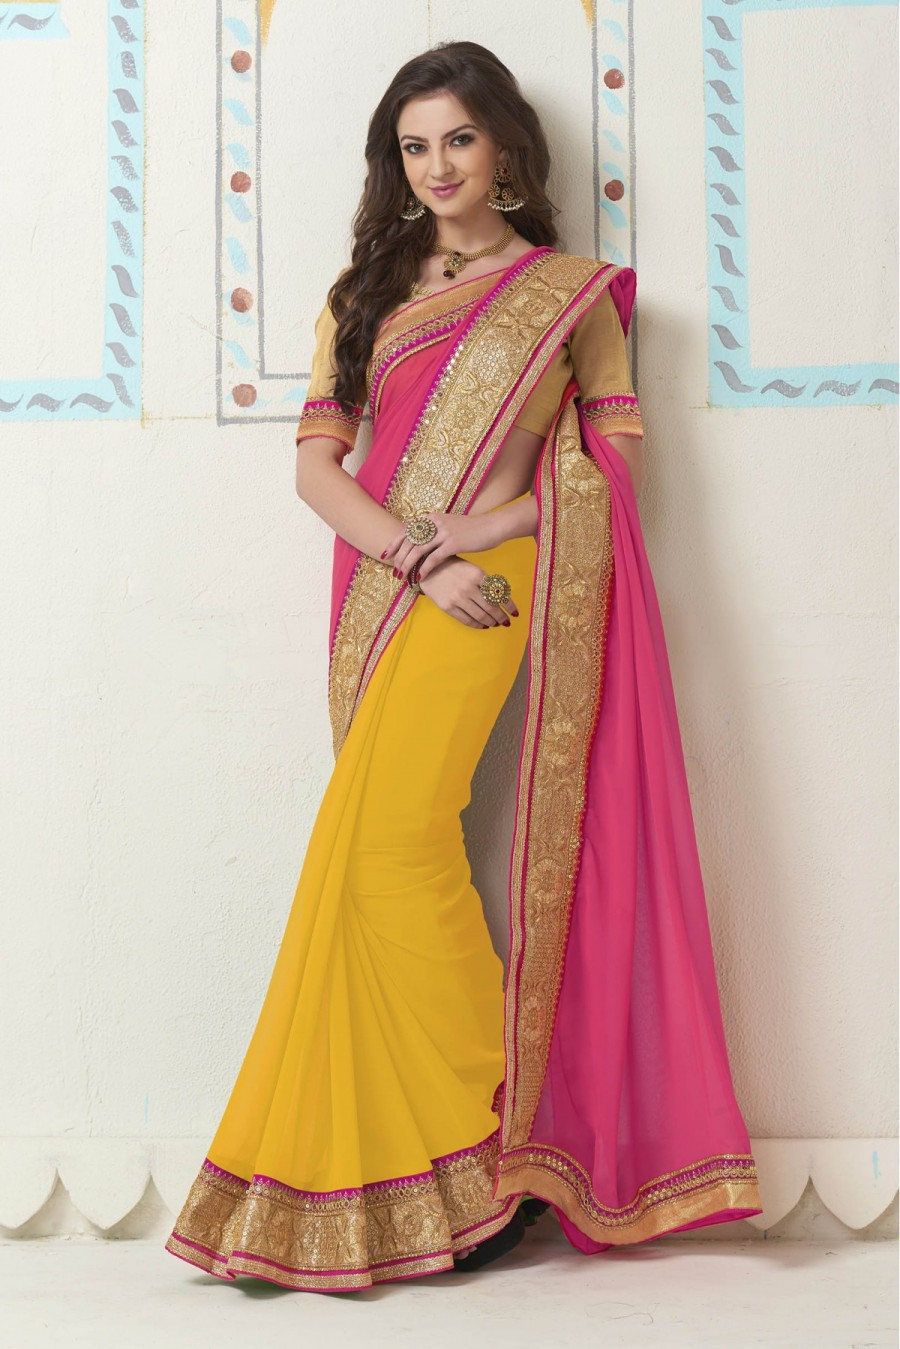 f5d3cbd5f1272f Buy Georgette Party Wear Saree In Yellow and Pink Colour Online